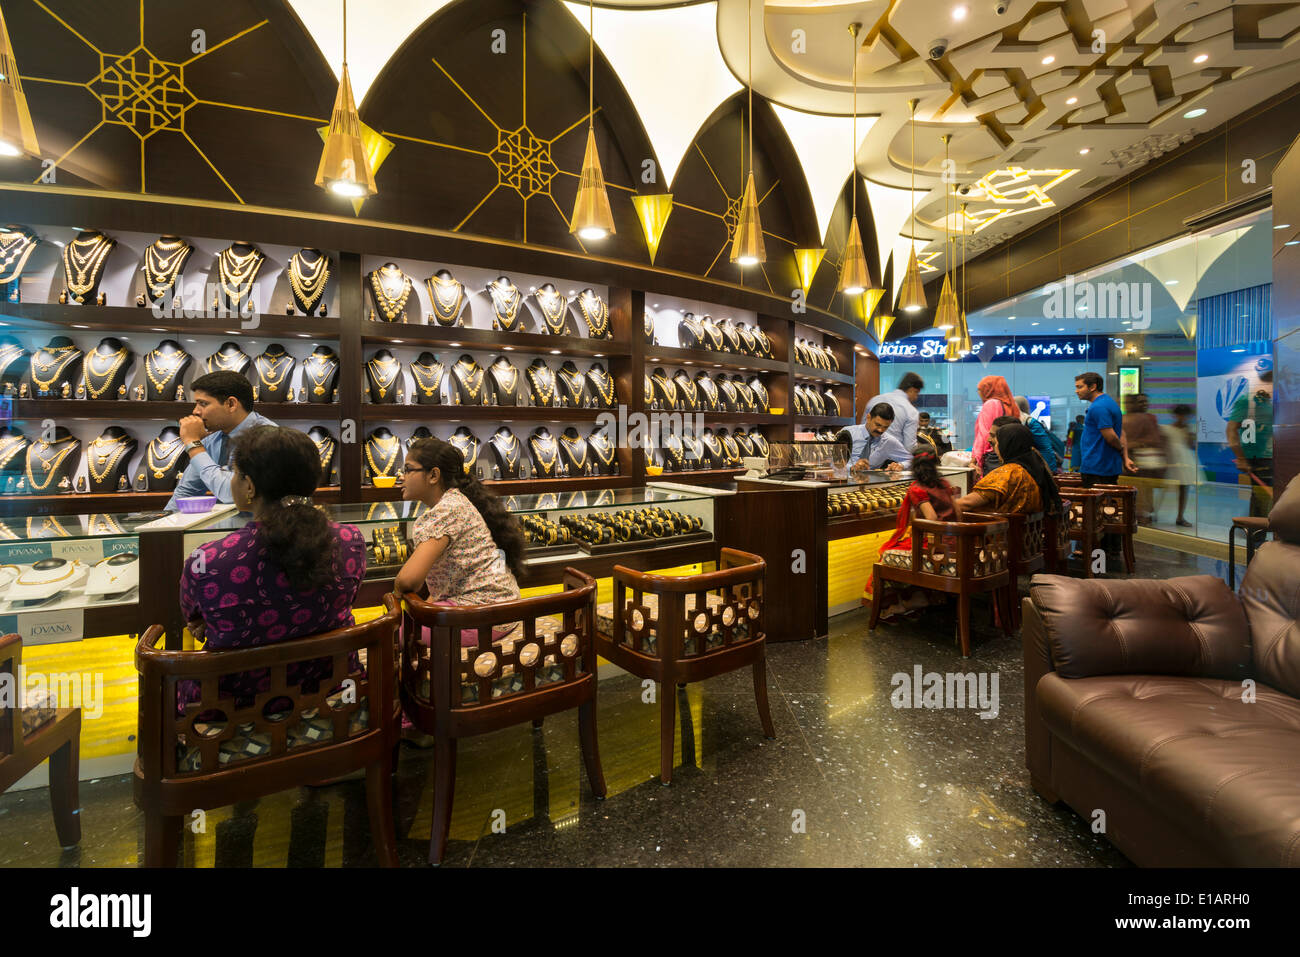 Lovely Jewellery Shop, Lulu Mall, Kochi, Kerala, India